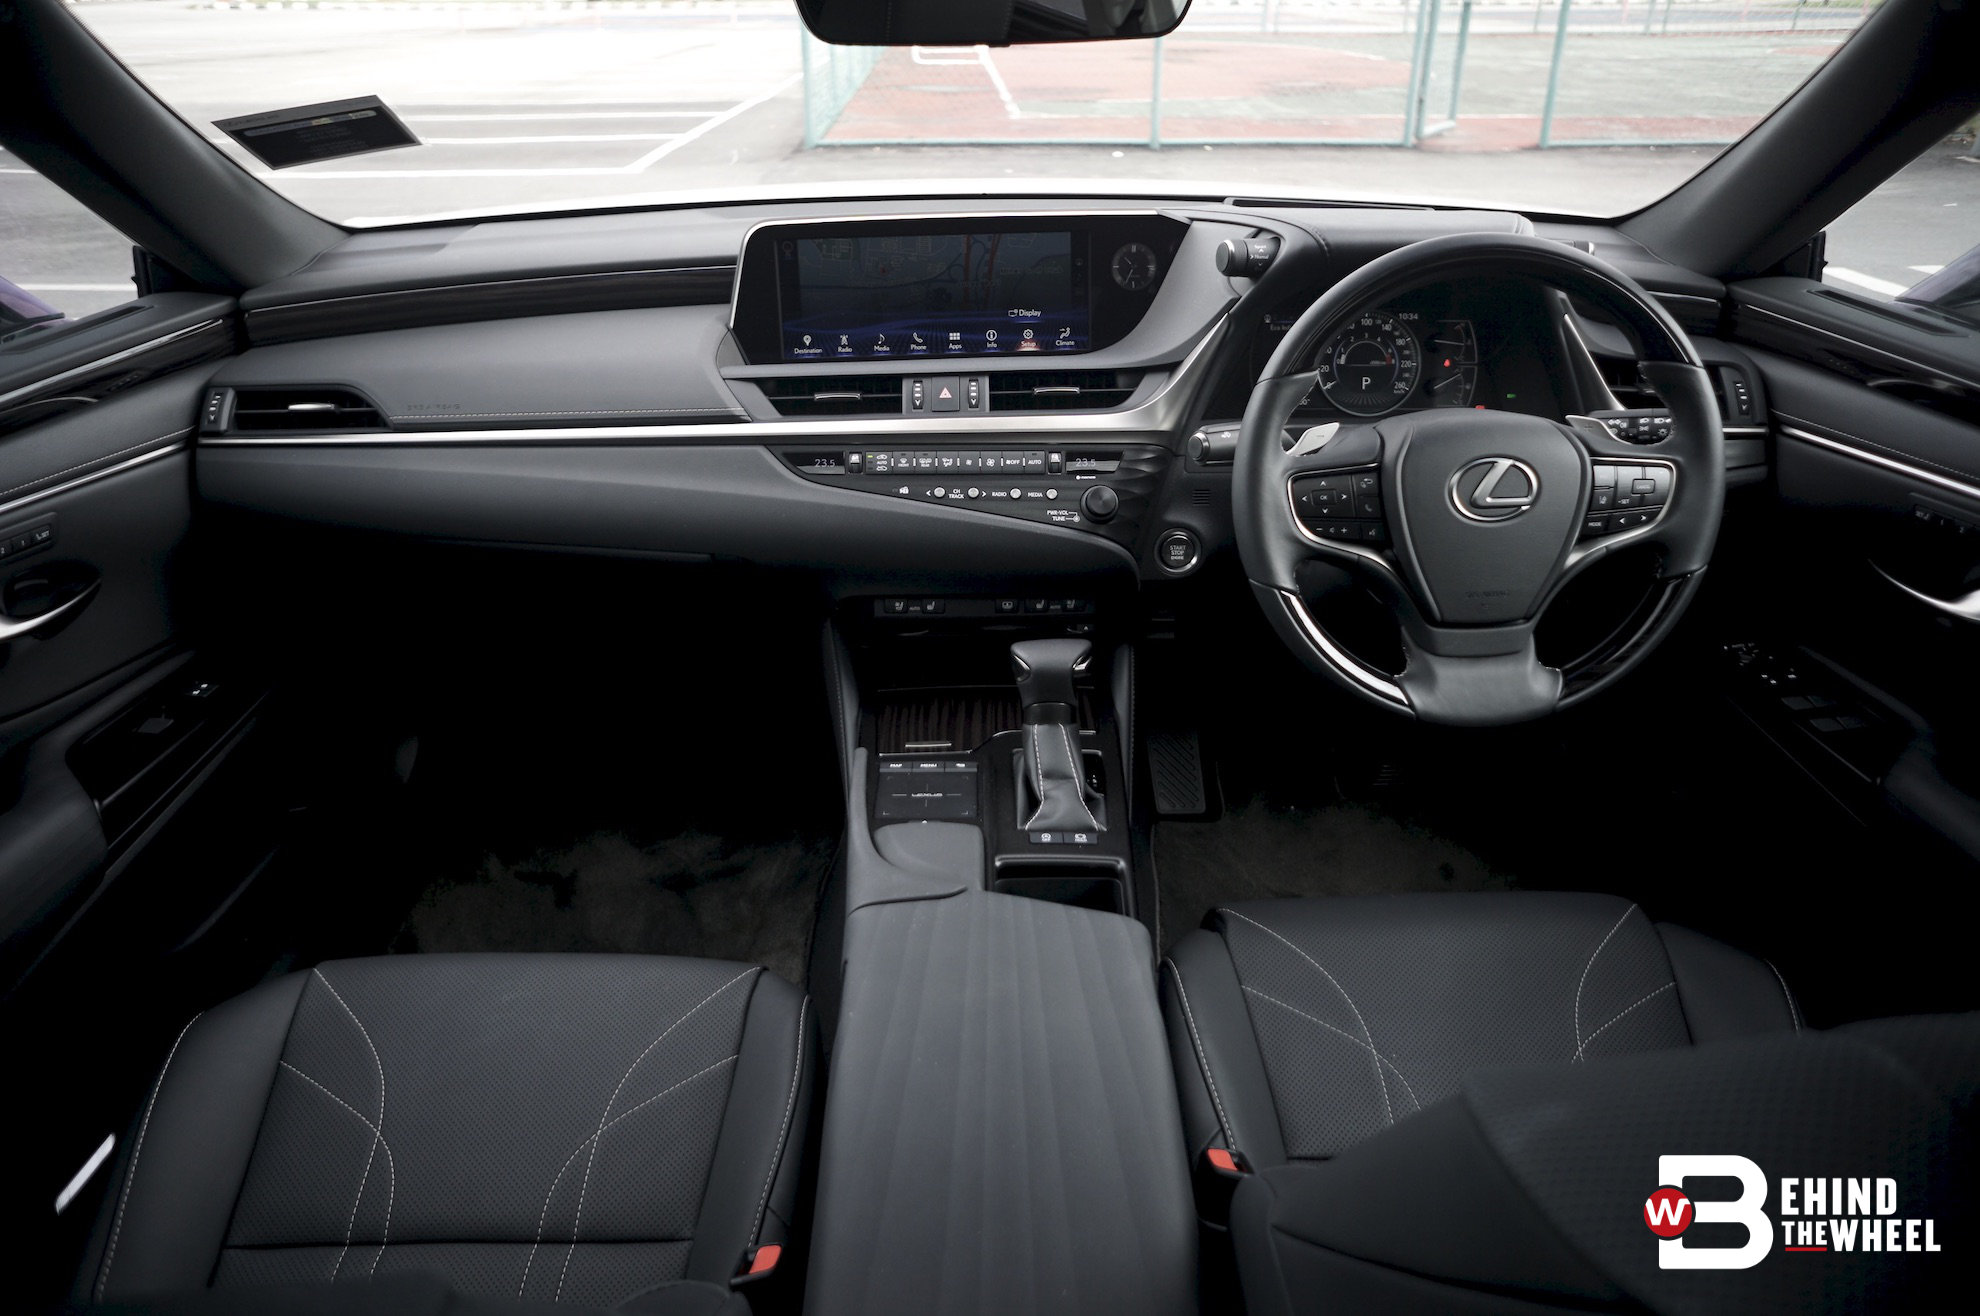 Review The Lexus Es 250 Is The Car To Drive After A Hard Day At Work Btw Rojak Daily